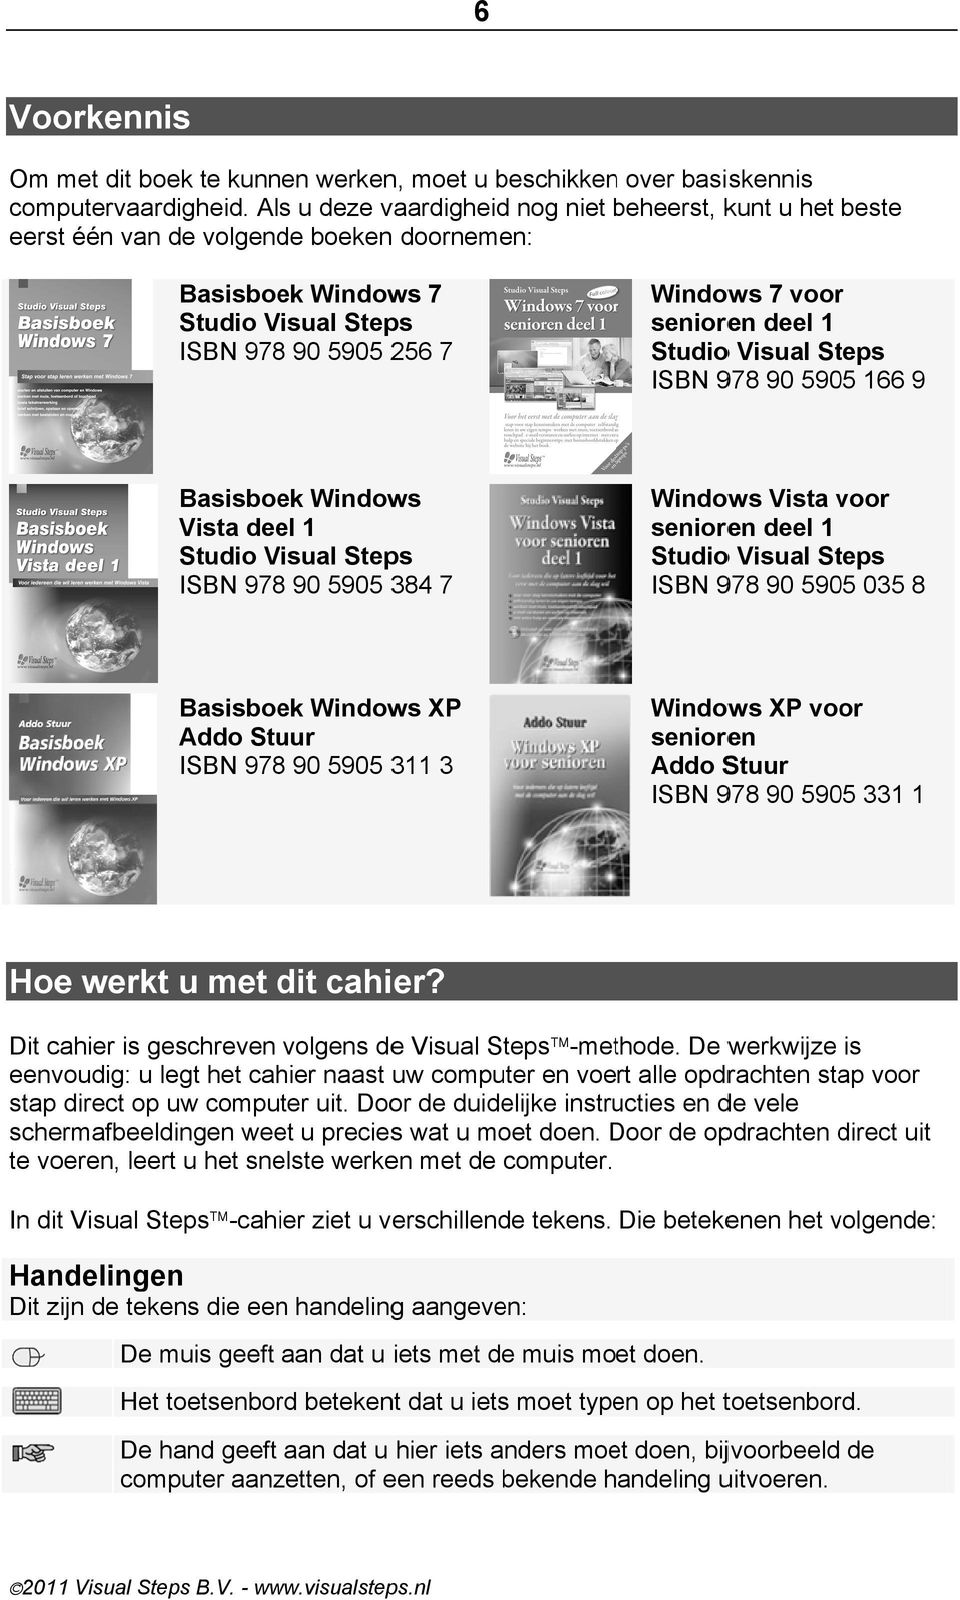 1 Studioo Visual Steps ISBN 978 90 5905 166 9 Basisboek Windows Vista deel 1 Studio Visual Steps ISBN 978 90 5905 384 7 Windows Vista voor senioren deel 1 Studioo Visual Steps ISBN 978 90 5905 035 8